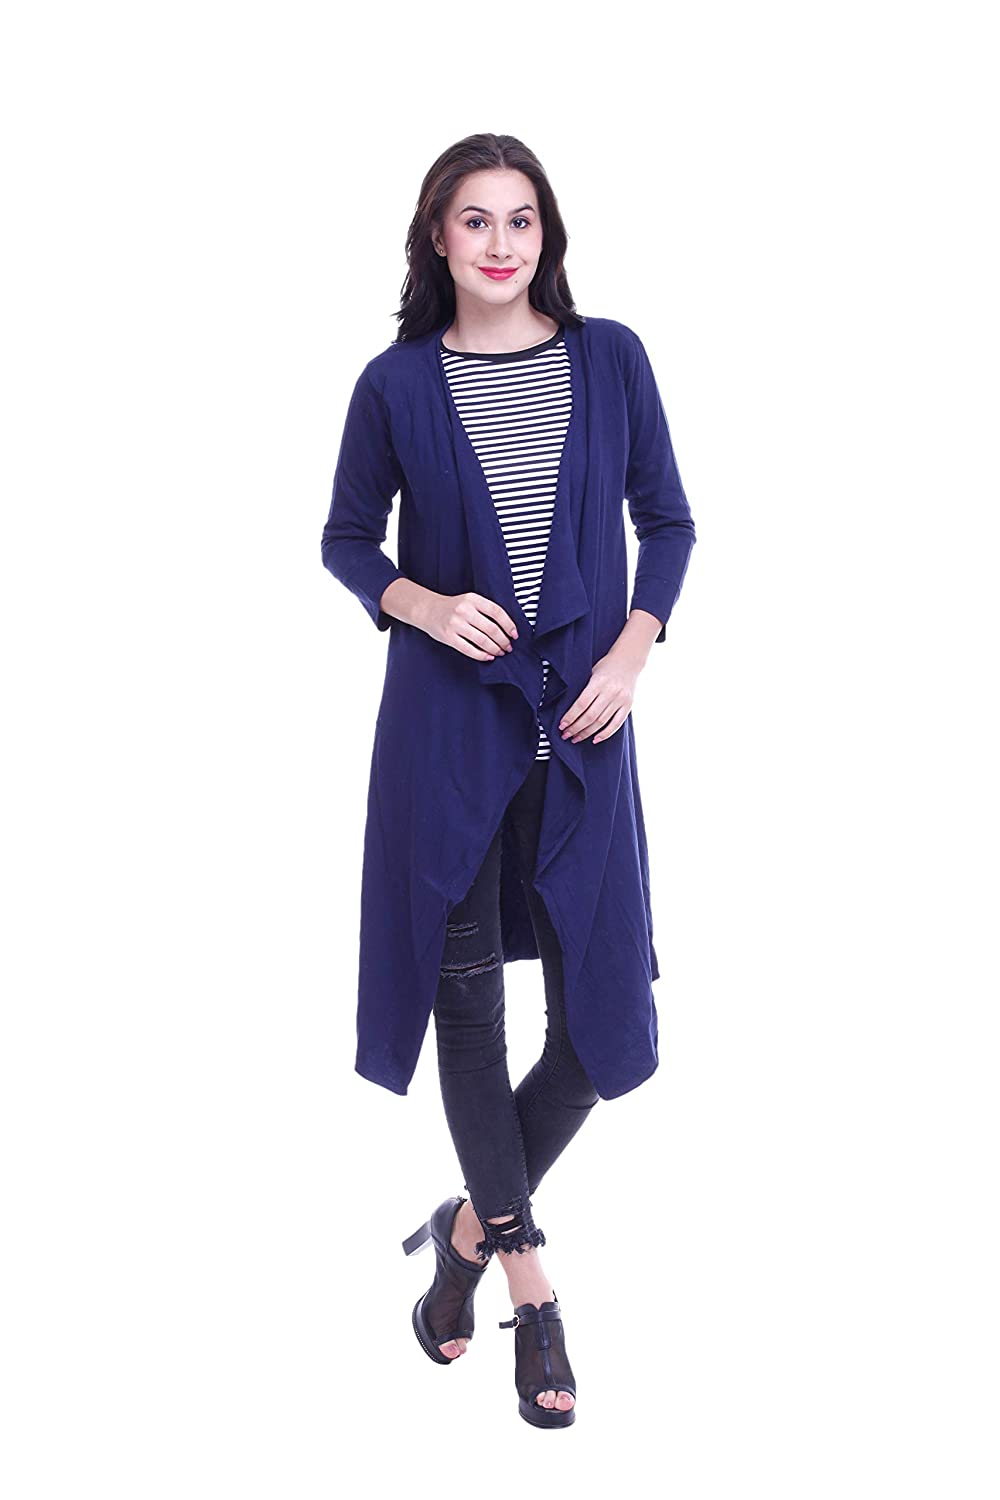 Buy Rane Women's Solid Cotton Long Shrug Blue at Amazon.in